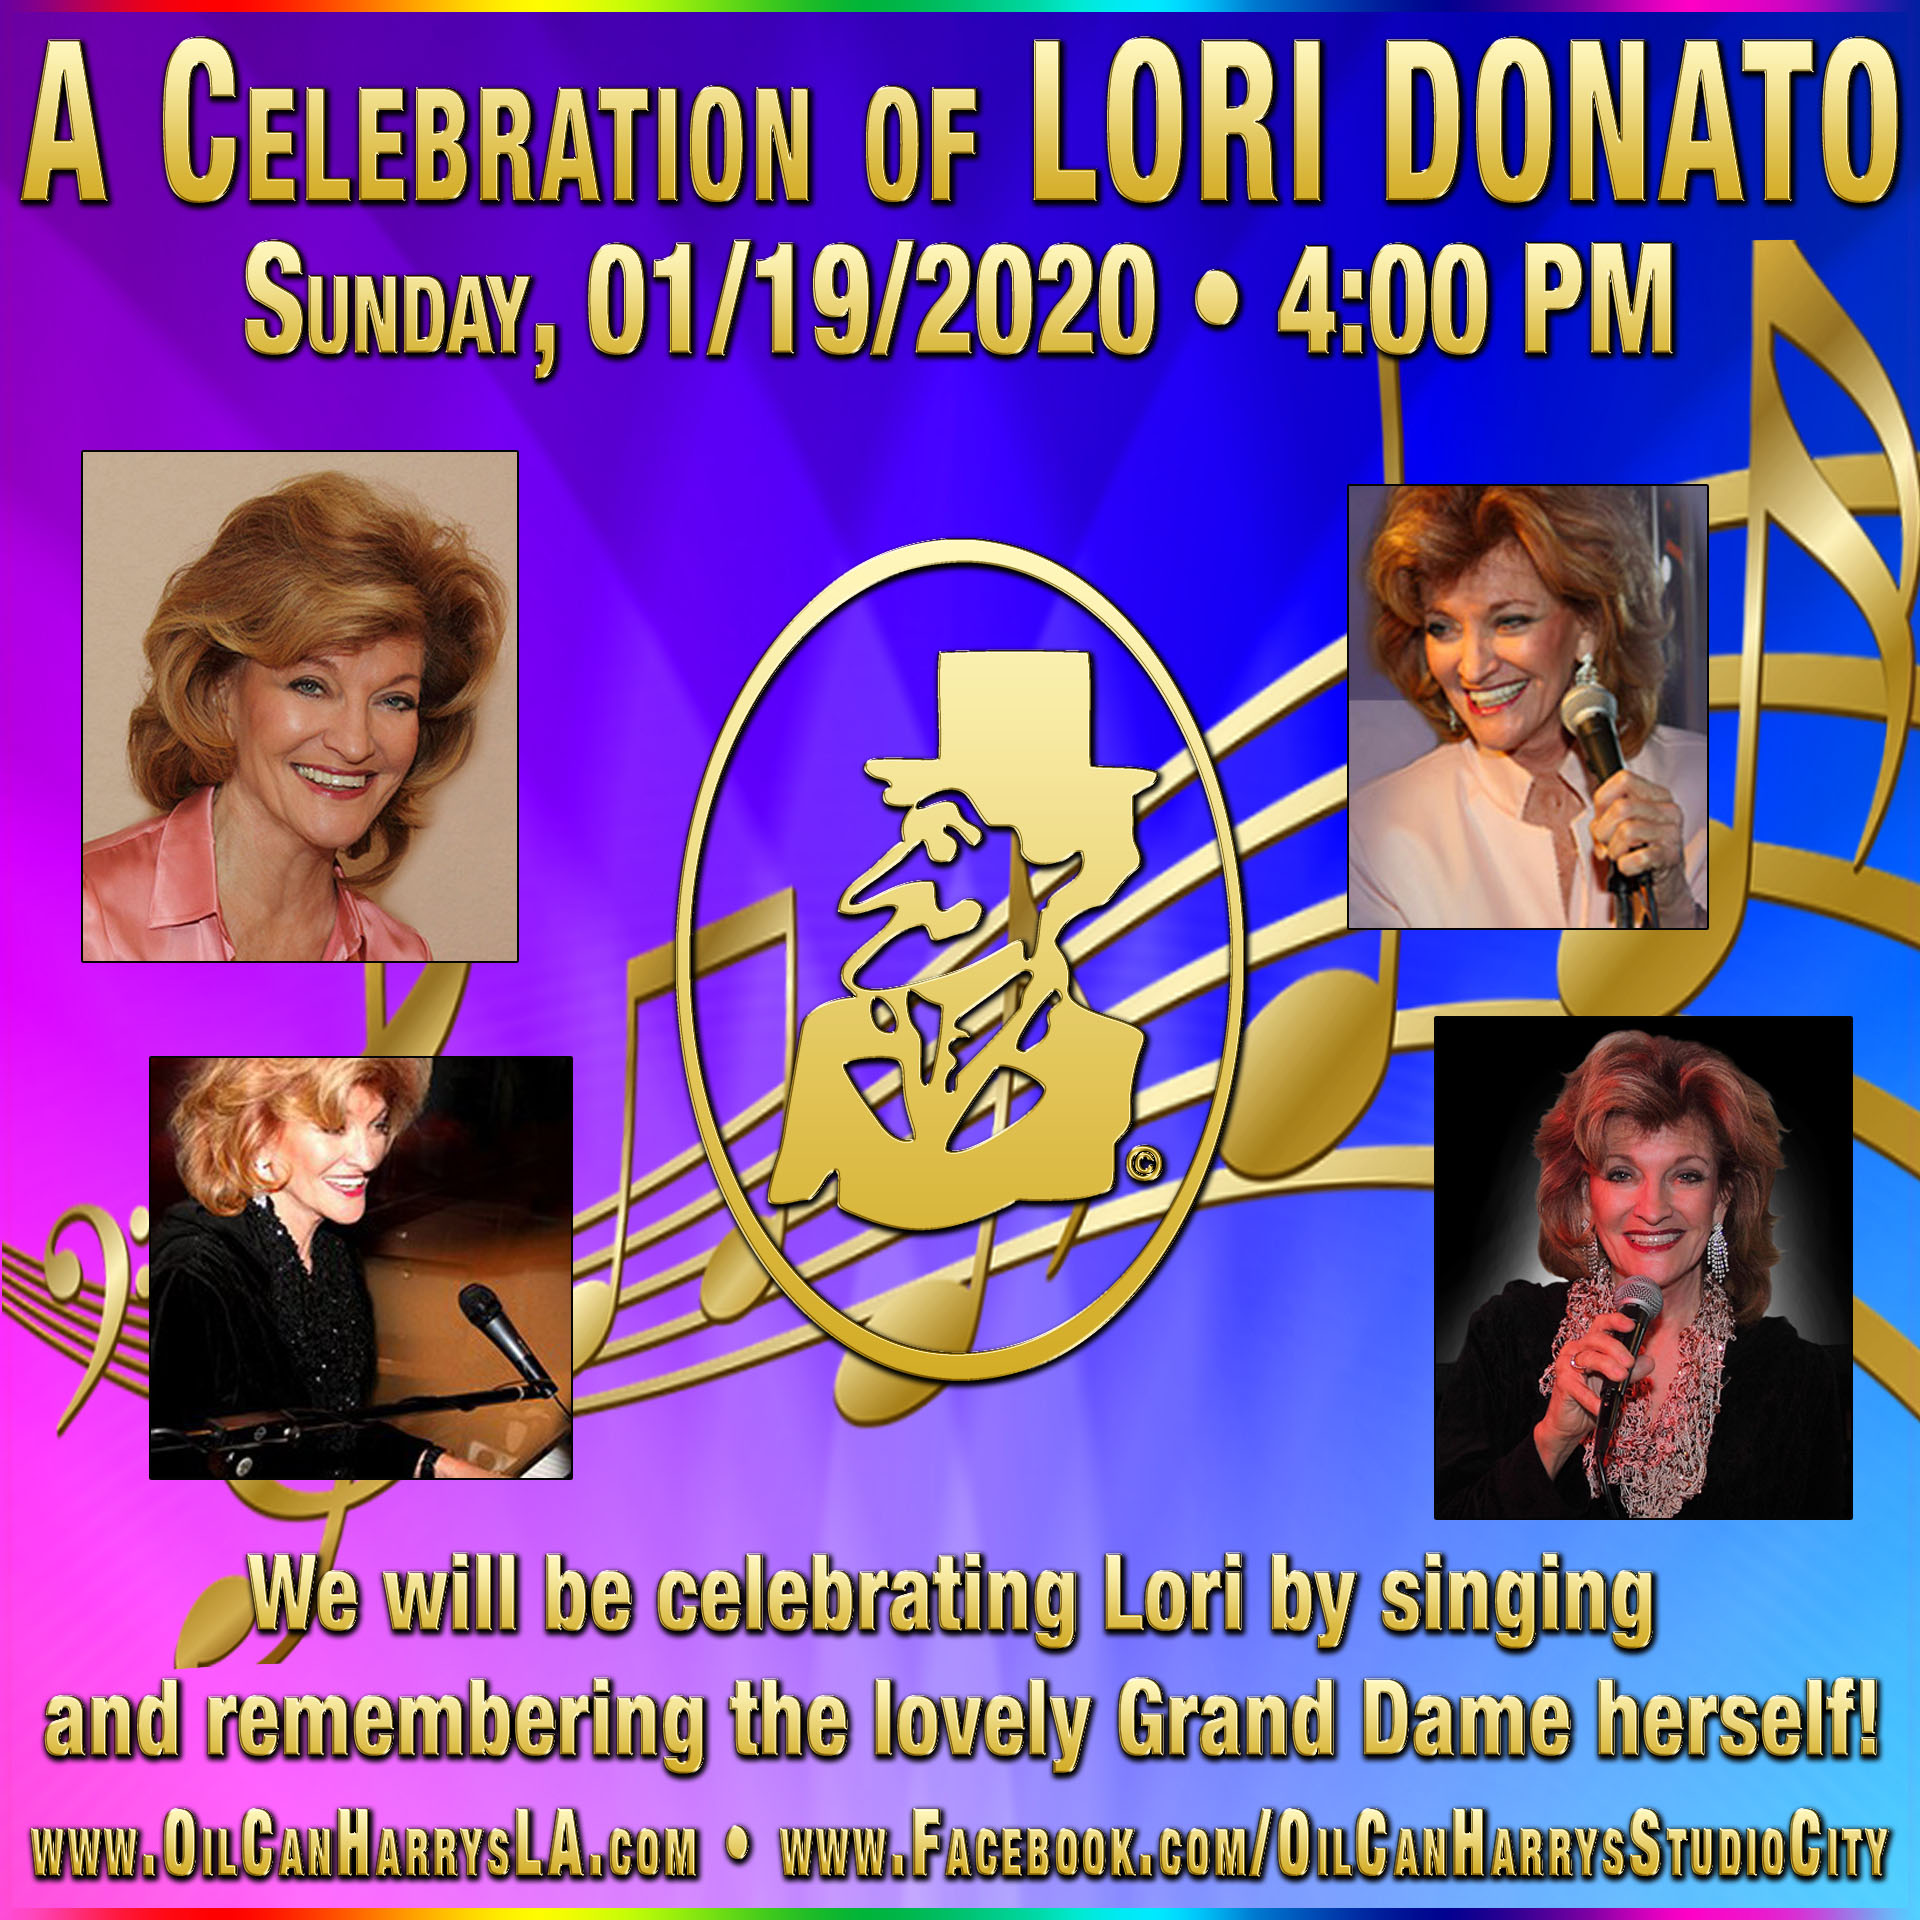 Oil Can Harry's Hosts A Celebration of LORI DONATO: Sunday, January 19, 2020 beginning at 4:00 PM! Come and sing and share your memories of The Grand Dame Herself...